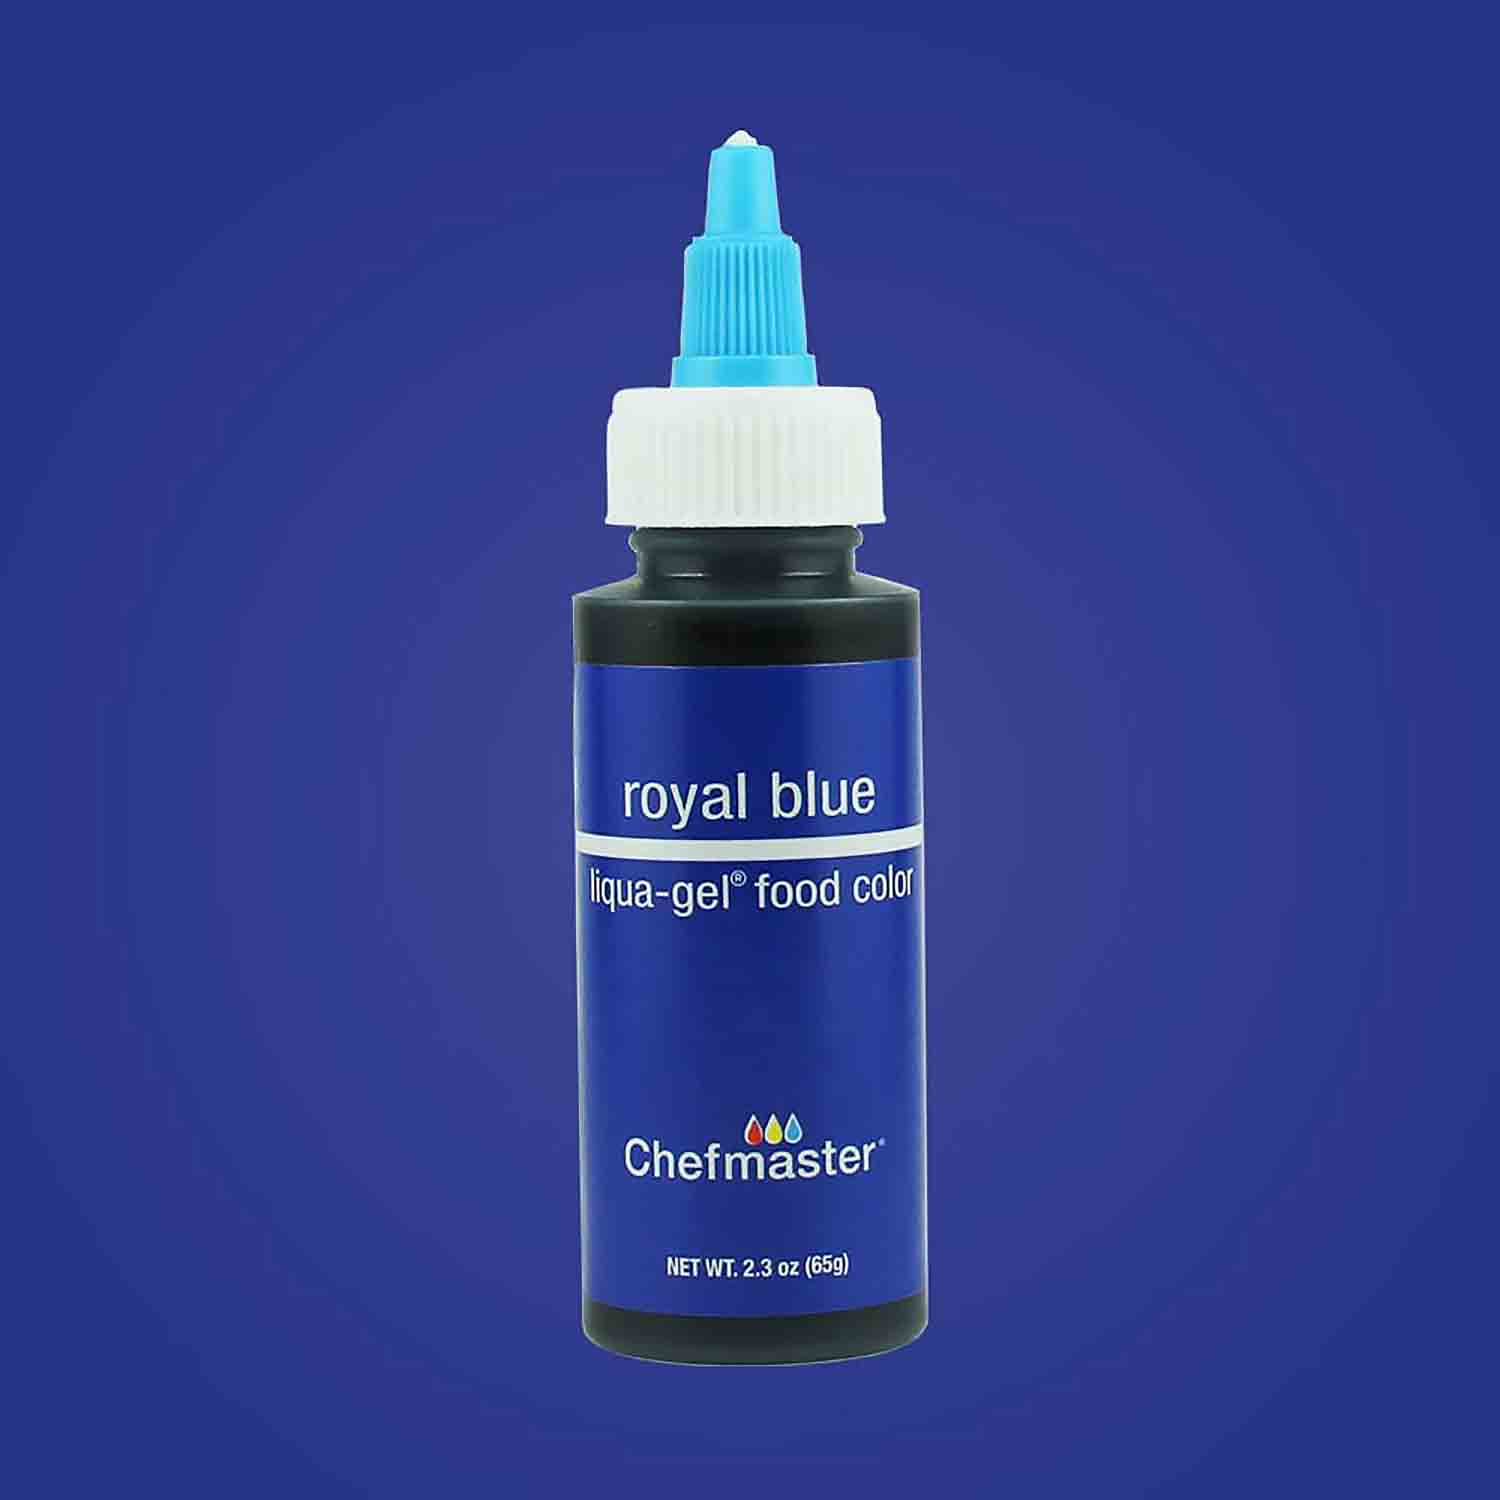 Royal Blue Chefmaster® Liqua-gel® Food Color